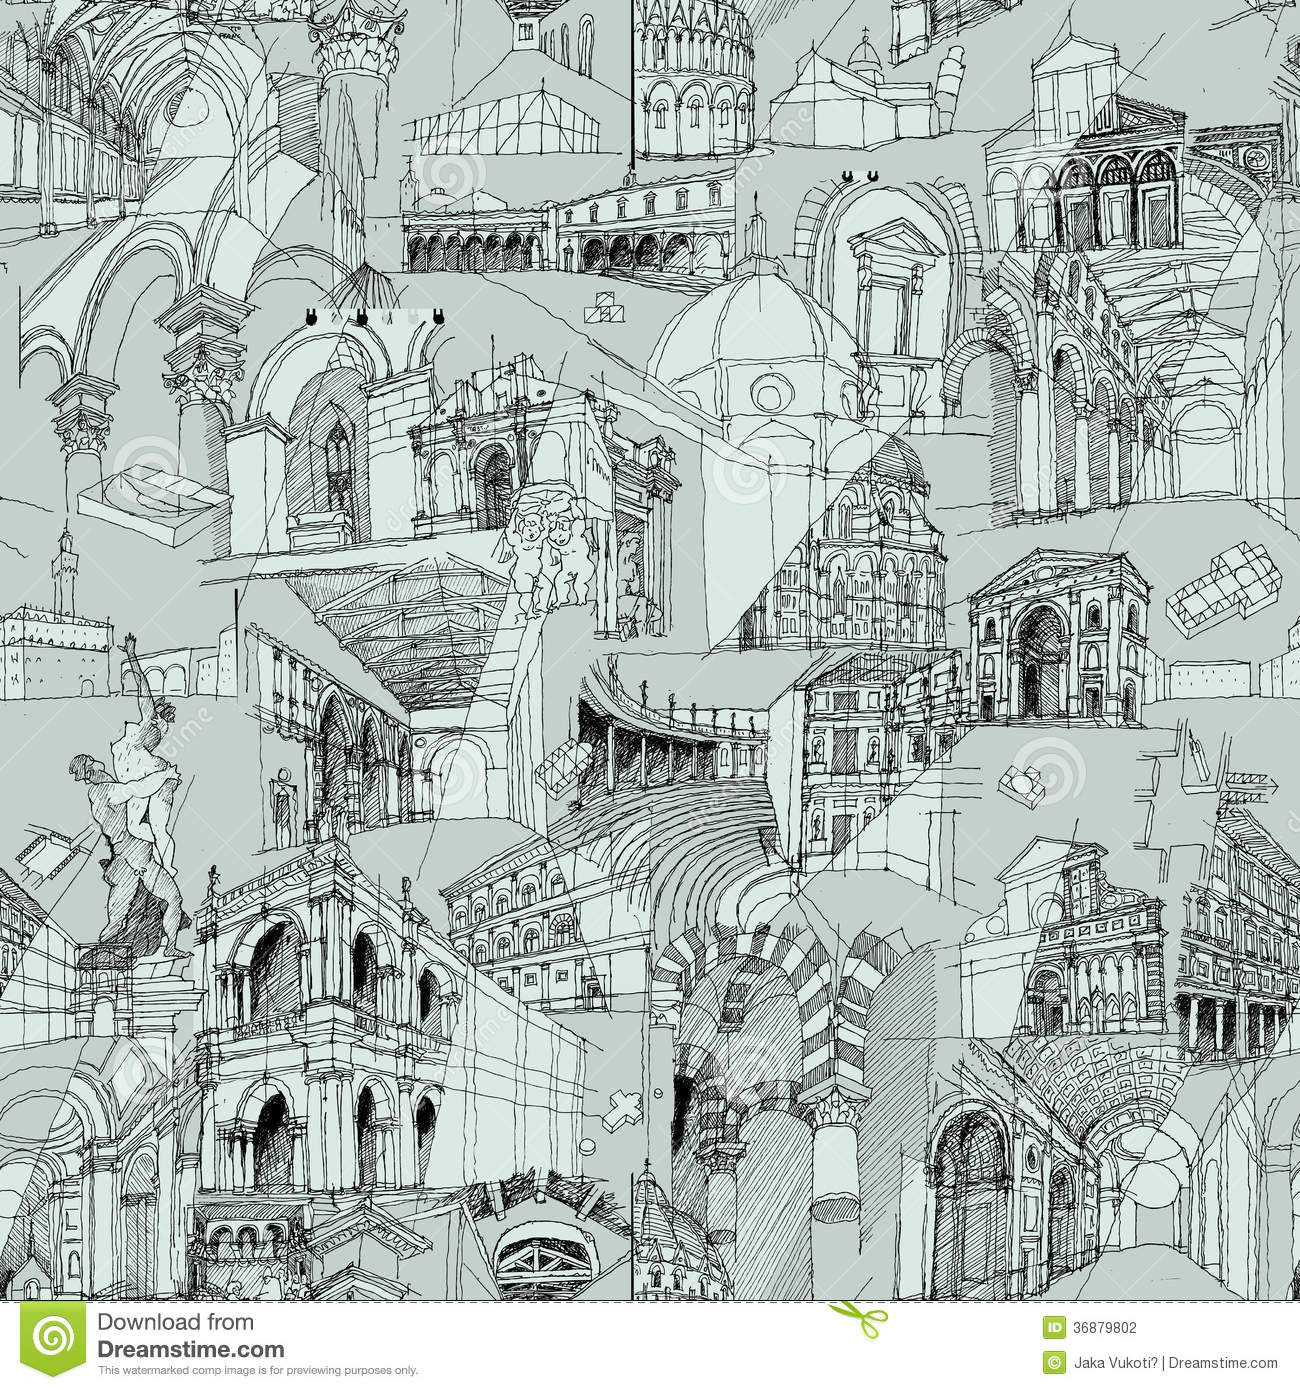 historic italian architecture collage seamless pattern sketch drawings monuments illustration eps mode 36879802